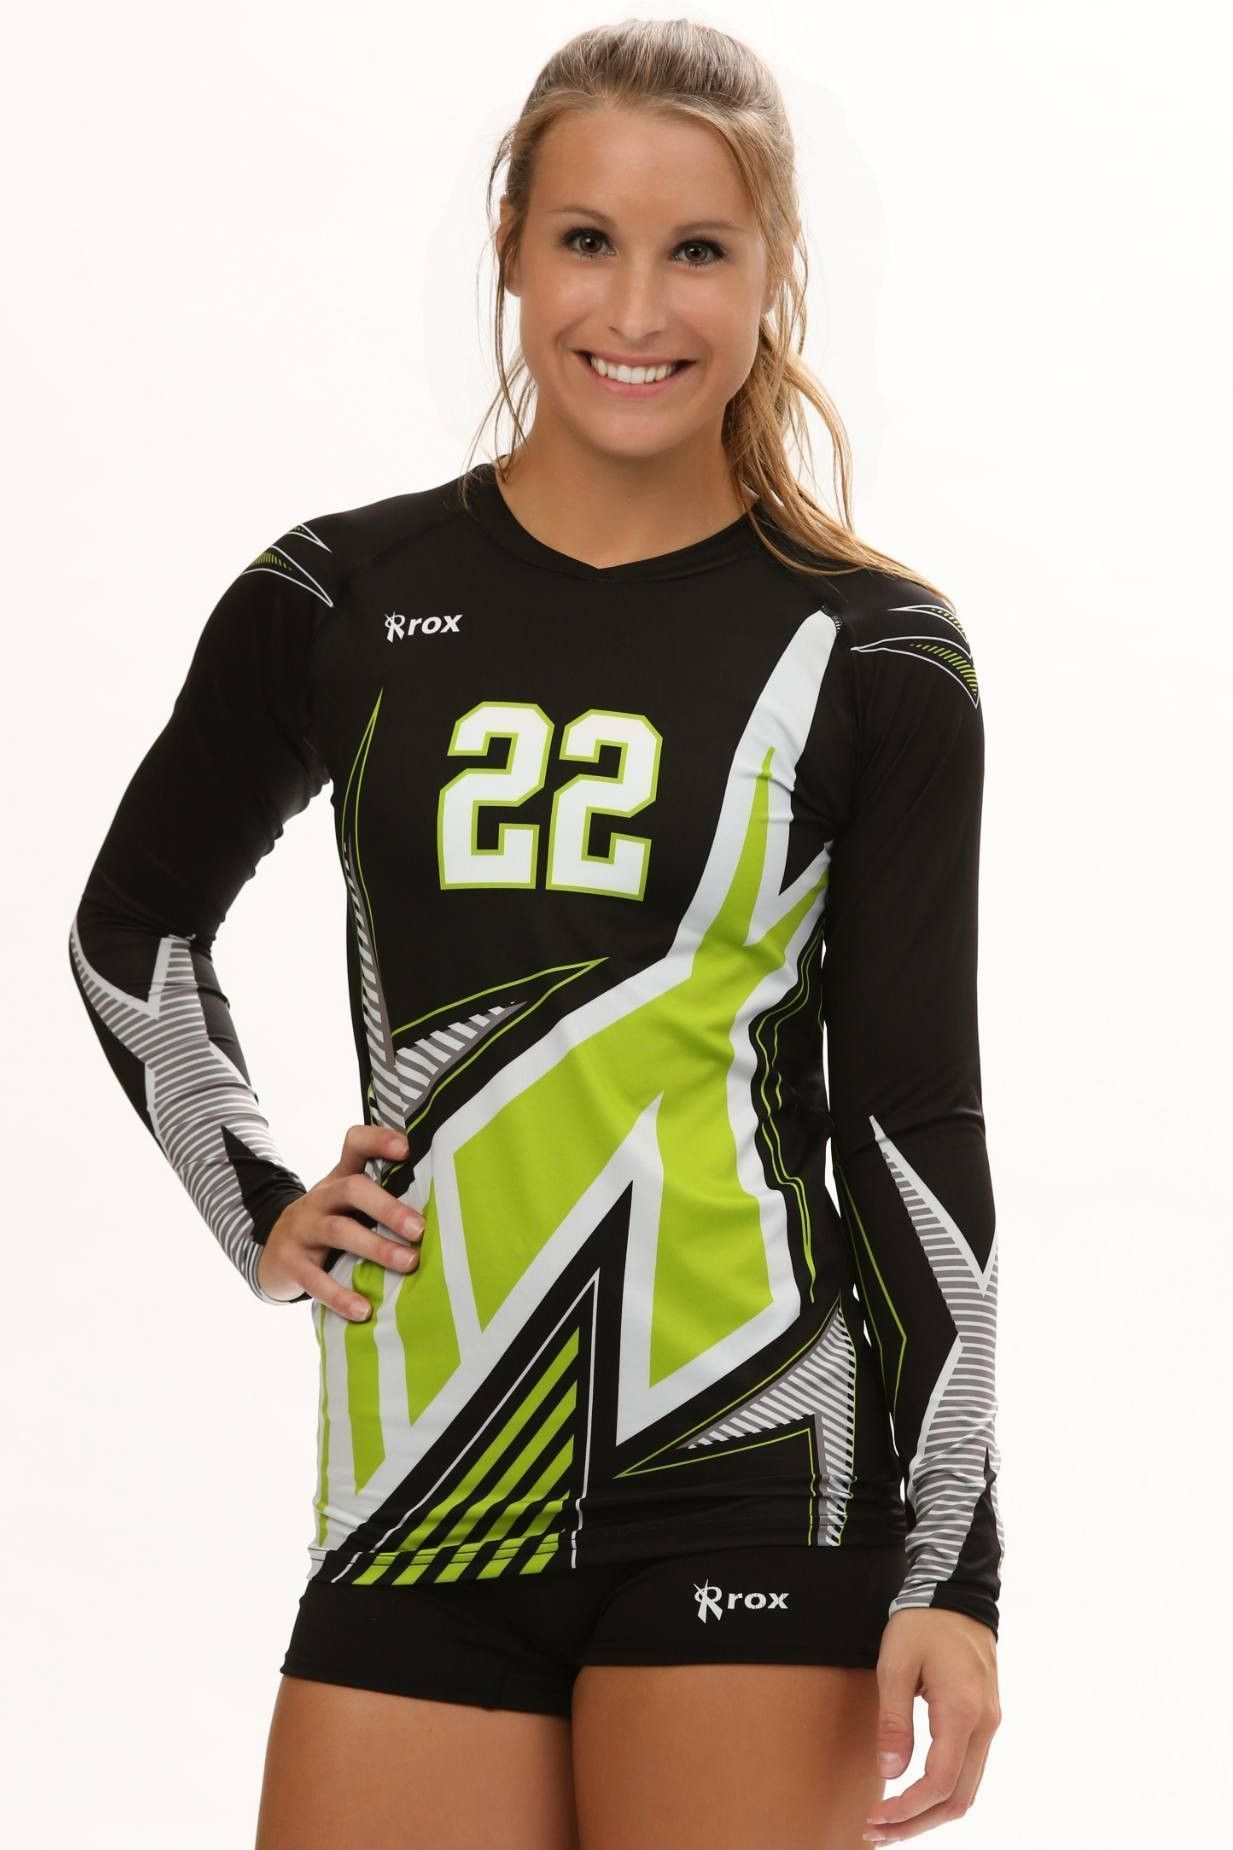 Xcelerator Women S Sublimated Volleyball Uniform Team Jersey Volleyball Uniforms Women